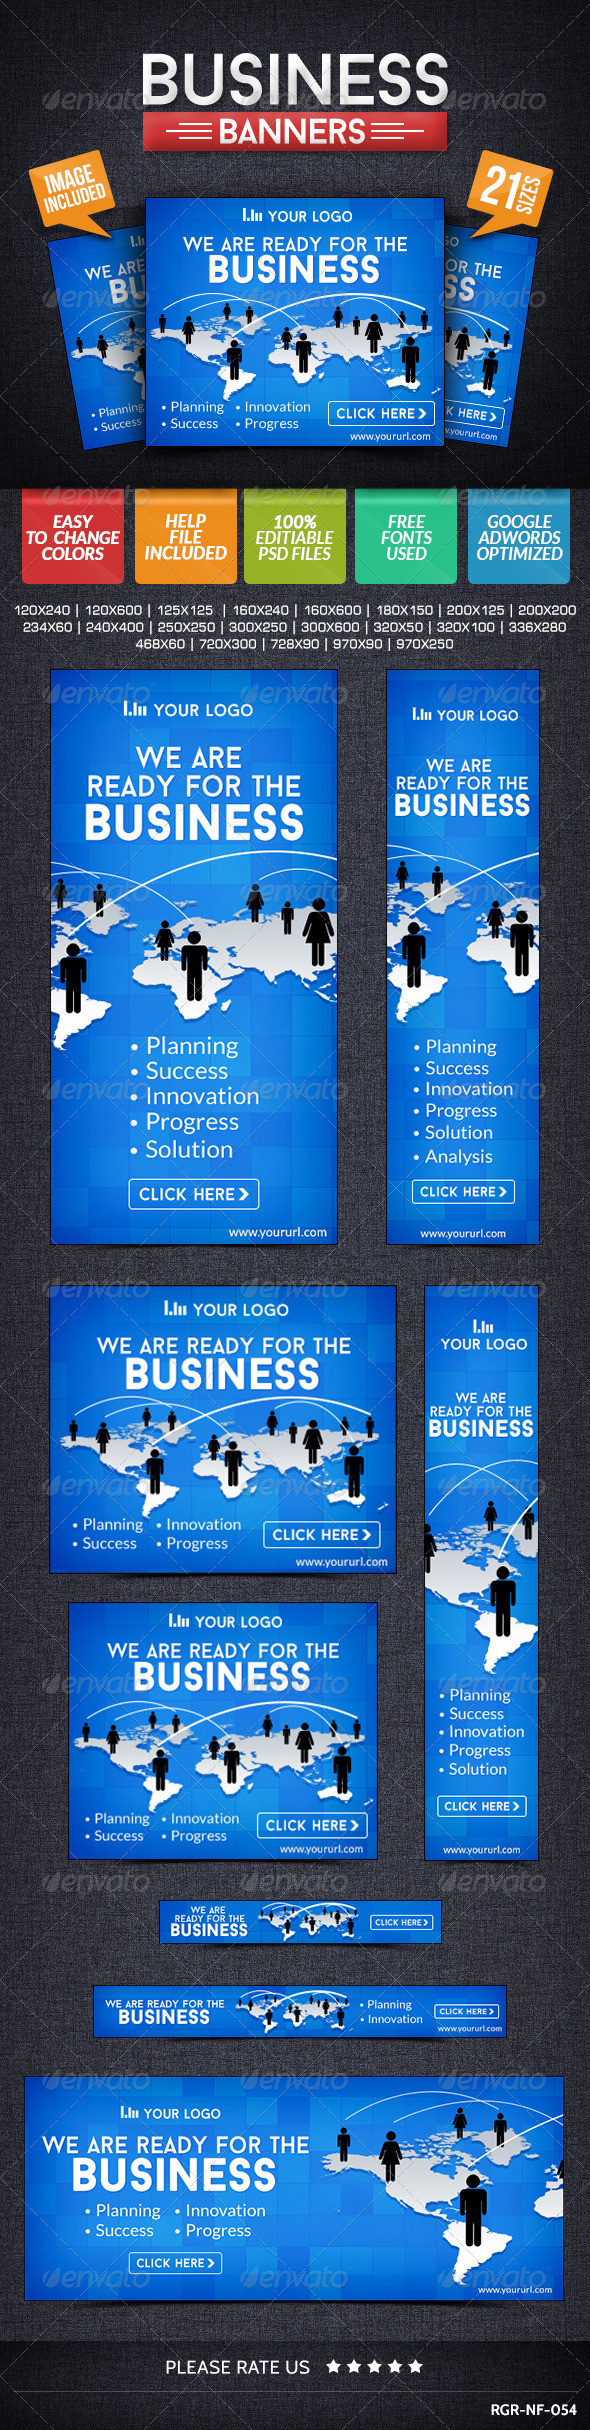 GraphicRiver Business & Marketing Banners 8512122